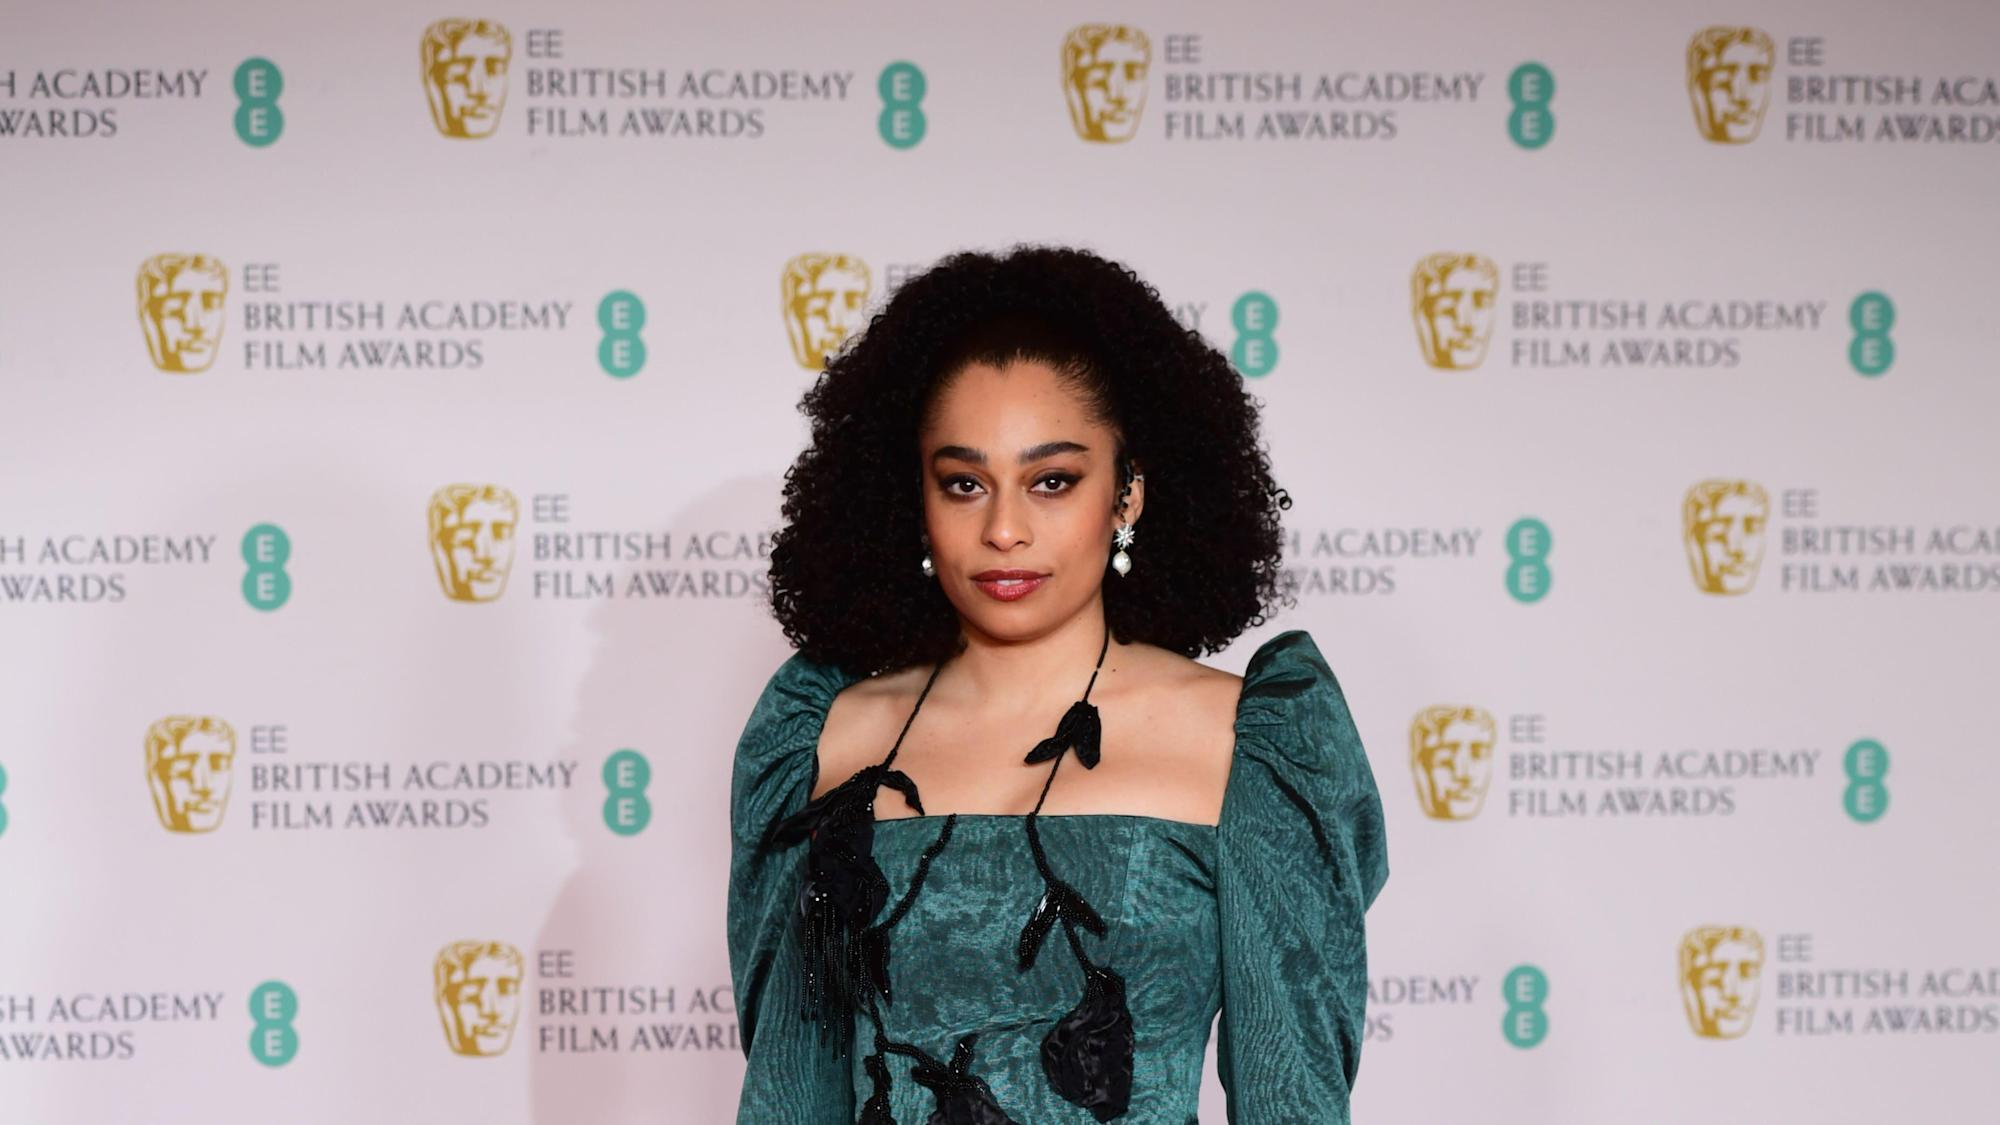 Celeste: Performing at virtual Baftas a unique opportunity